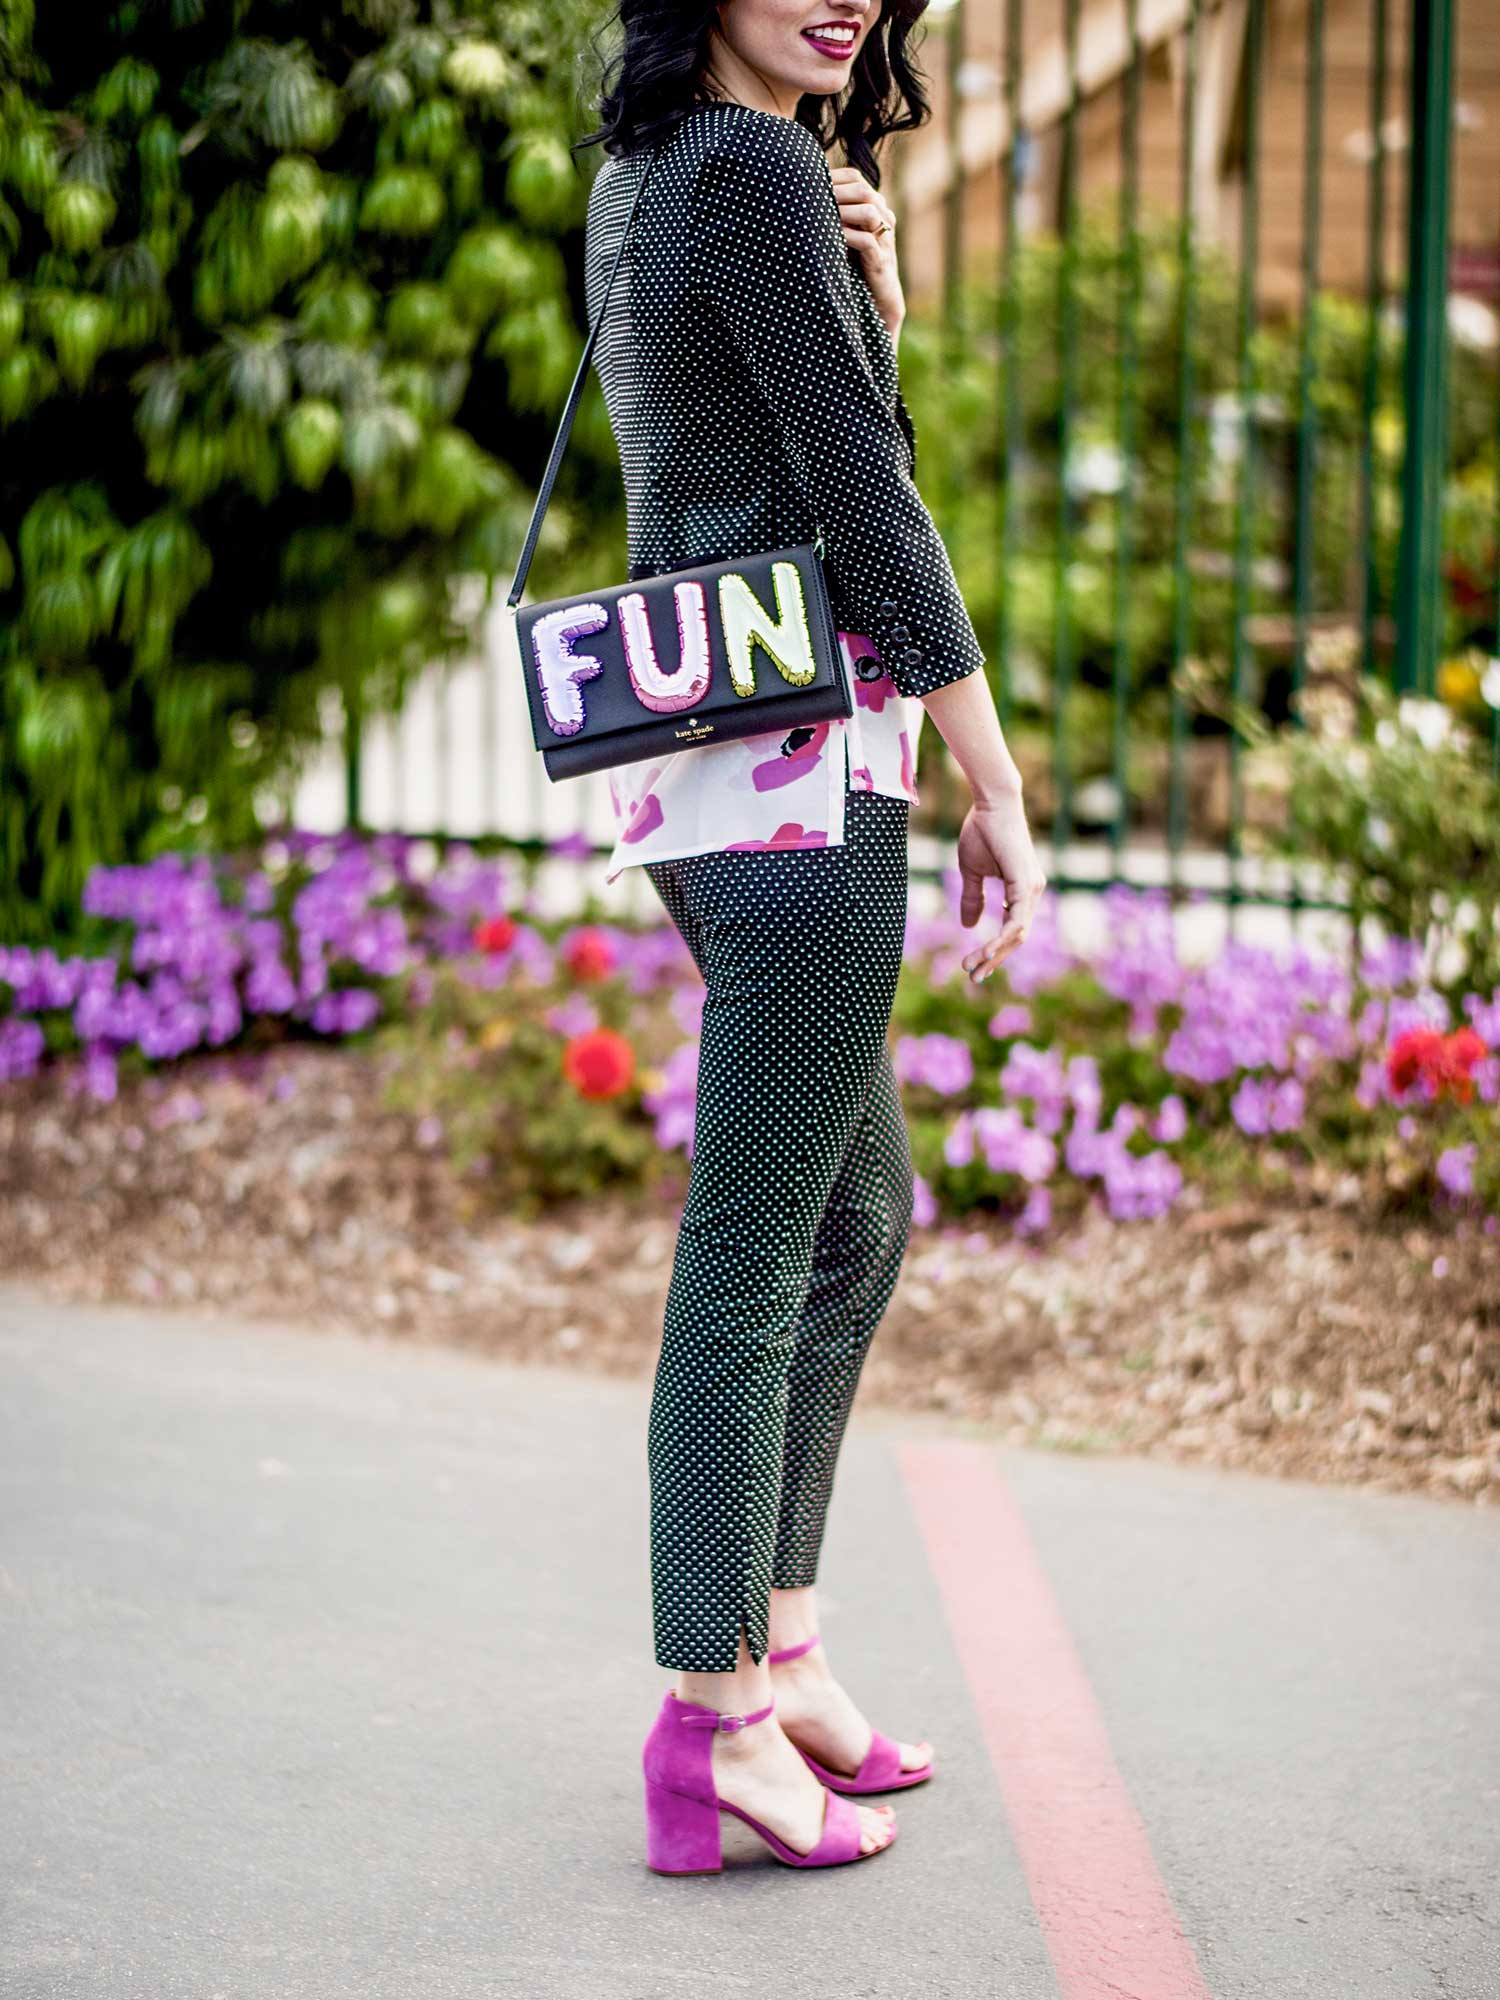 Jenna-Pilant-San-Diego-Style-Blogger-Lucky-Little-Mustardseed-Wearing-A-Suit-Can-Be-Fun-3